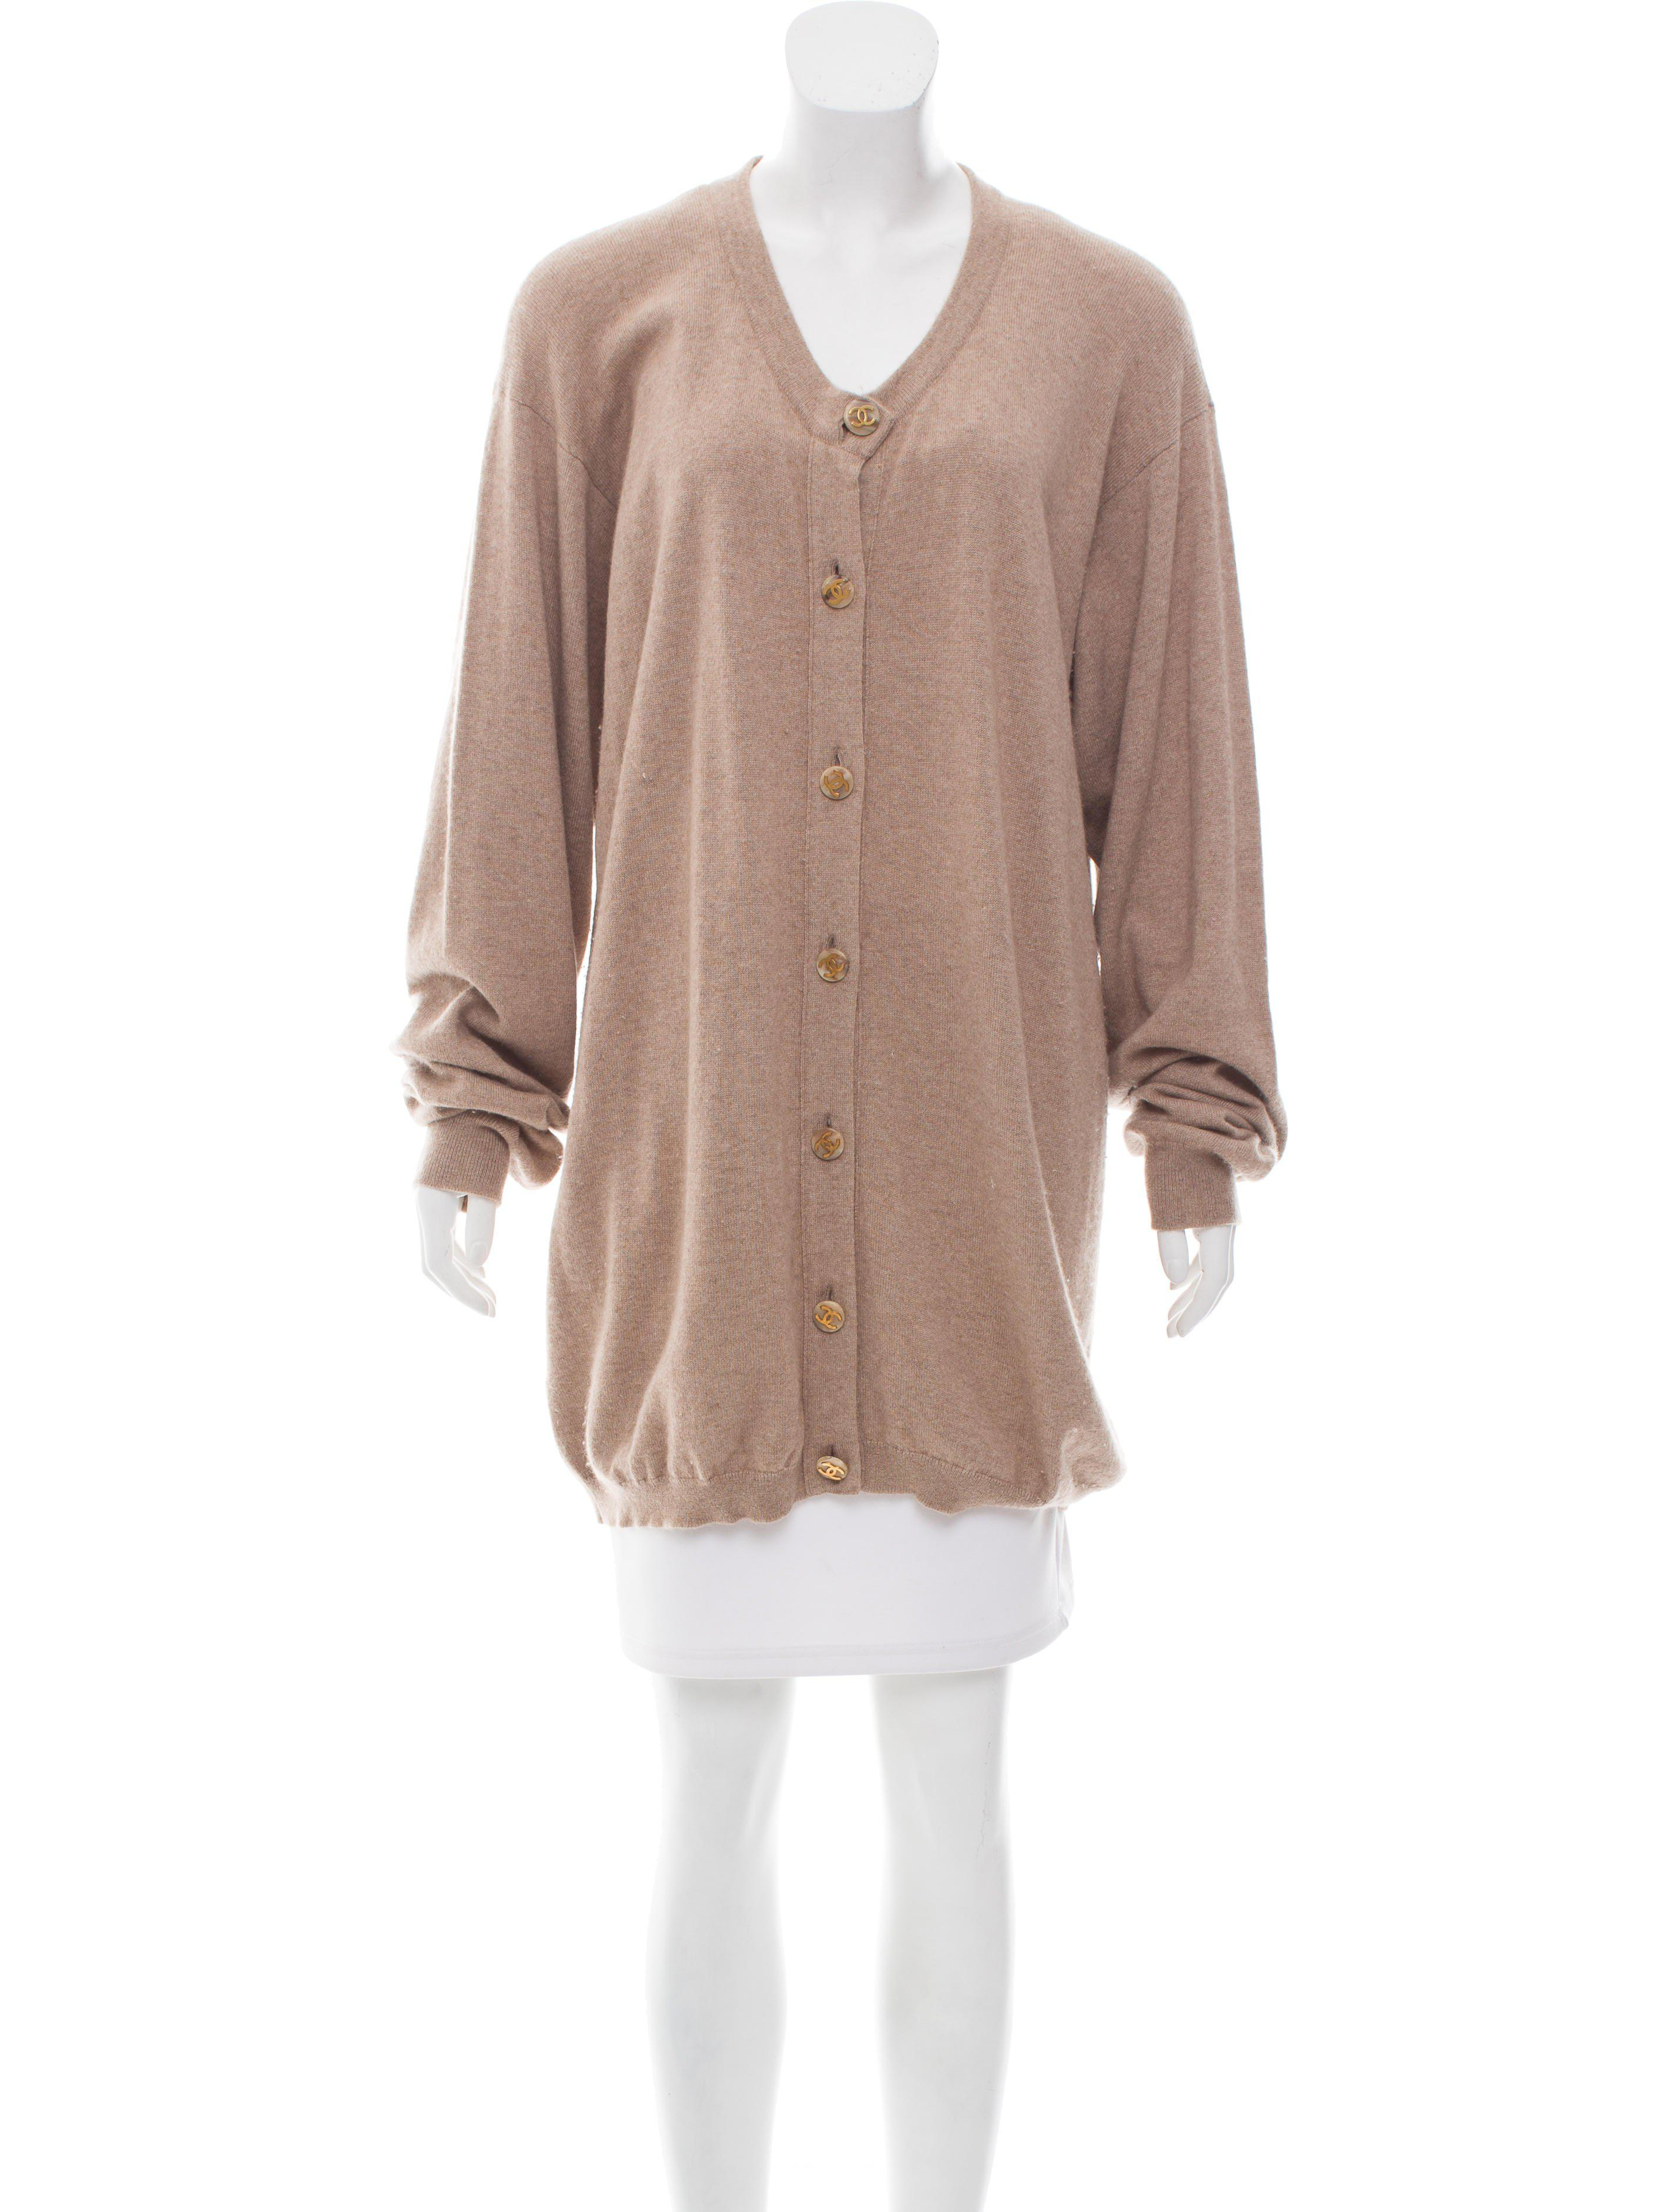 Chanel Longline Cashmere Cardigan Tan in Natural | Lyst